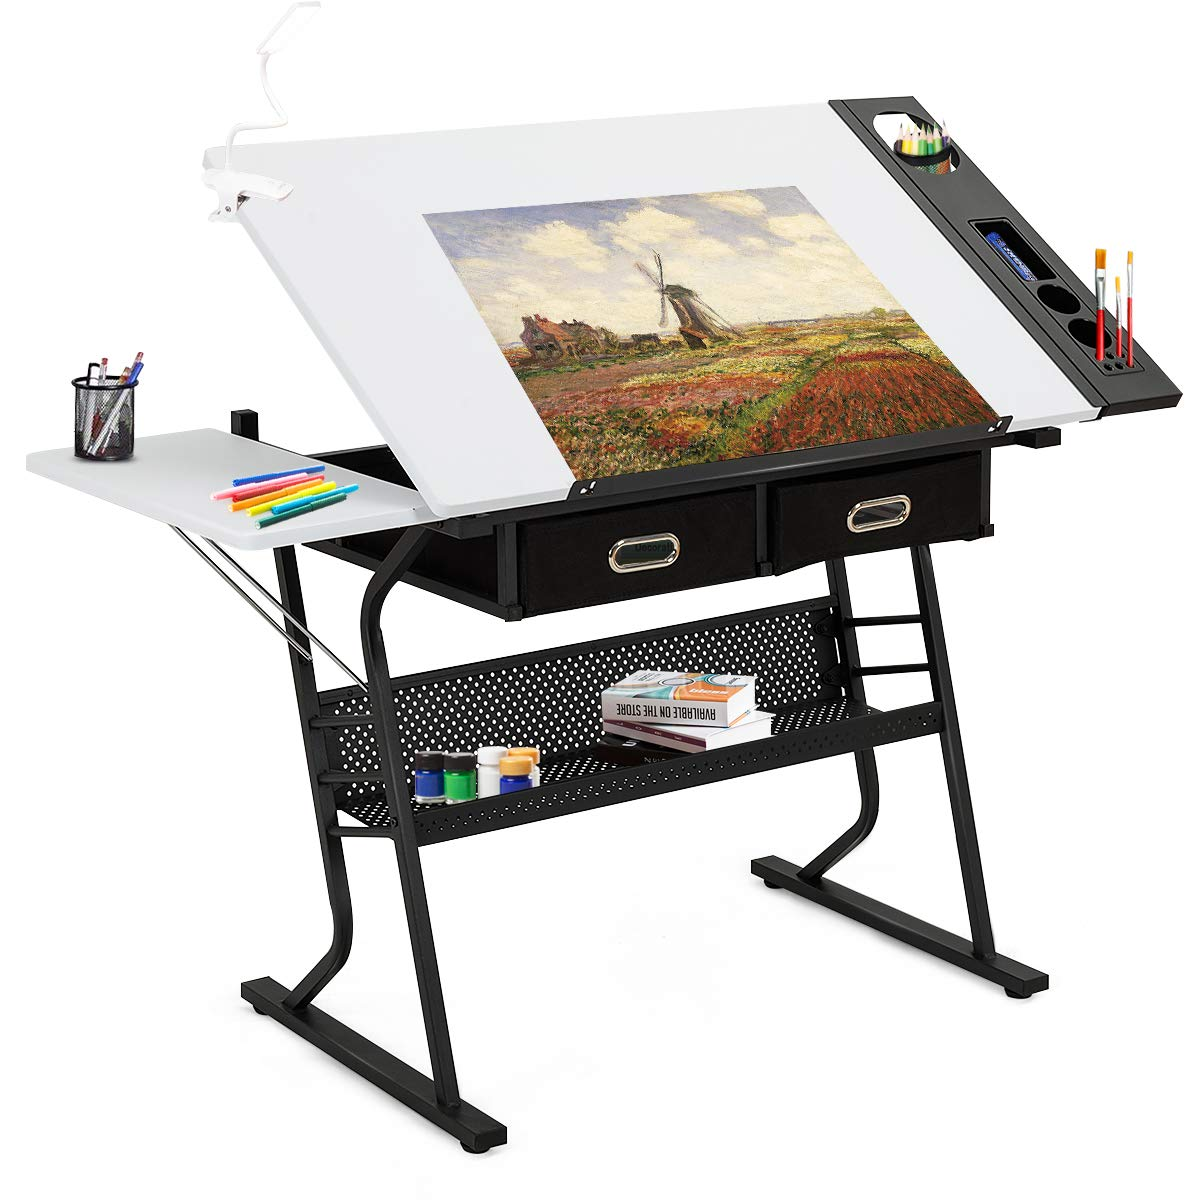 Tangkula Adjustable Drafting Table Art & Craft Drawing Desk Folding with Drawers